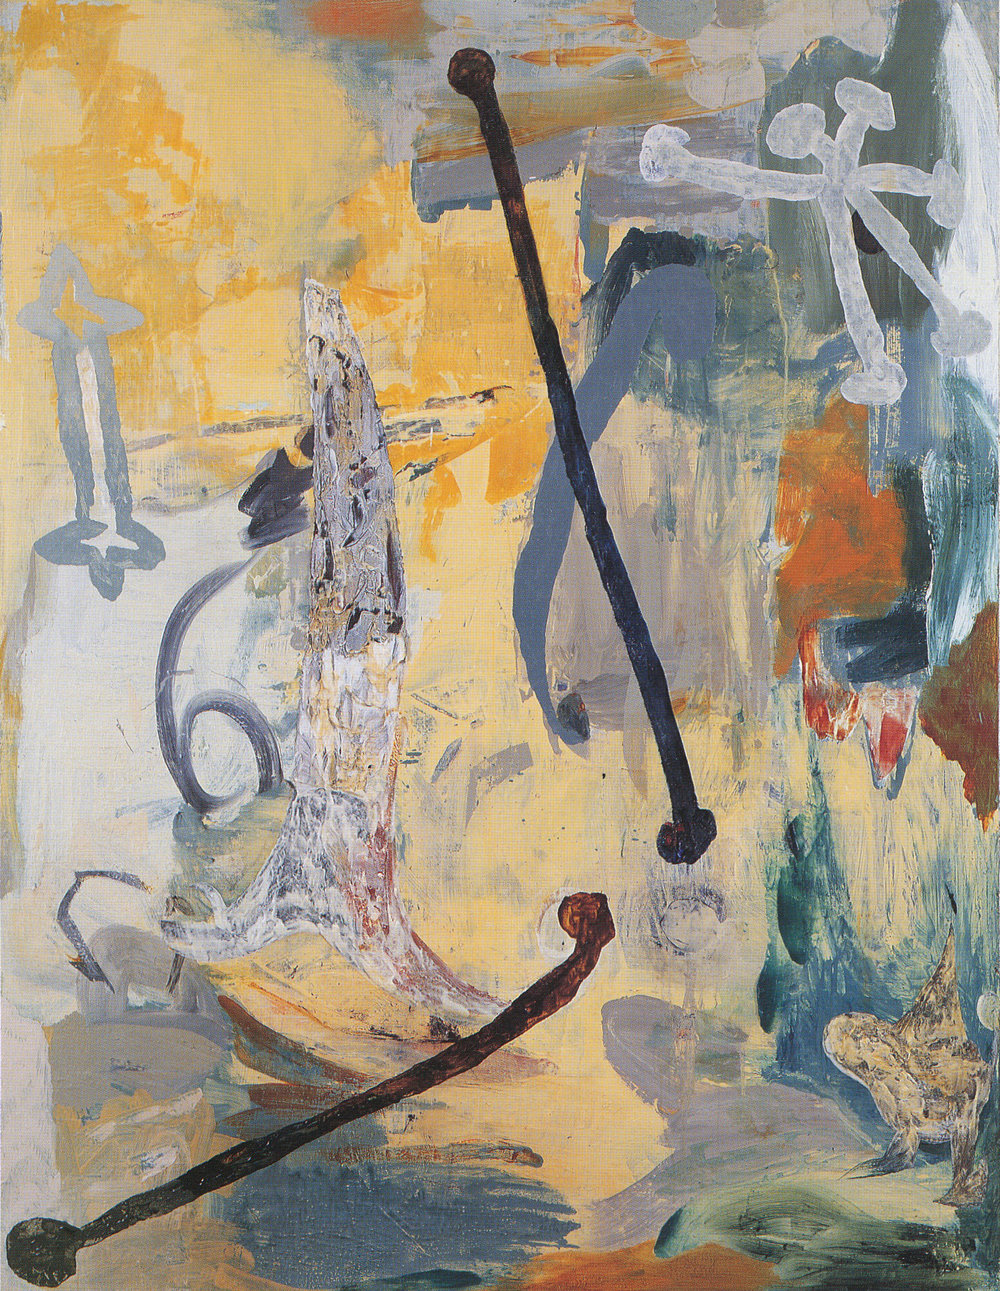 107) Once Upon a Time 1990 oil on linen 213x162.5cm.jpeg